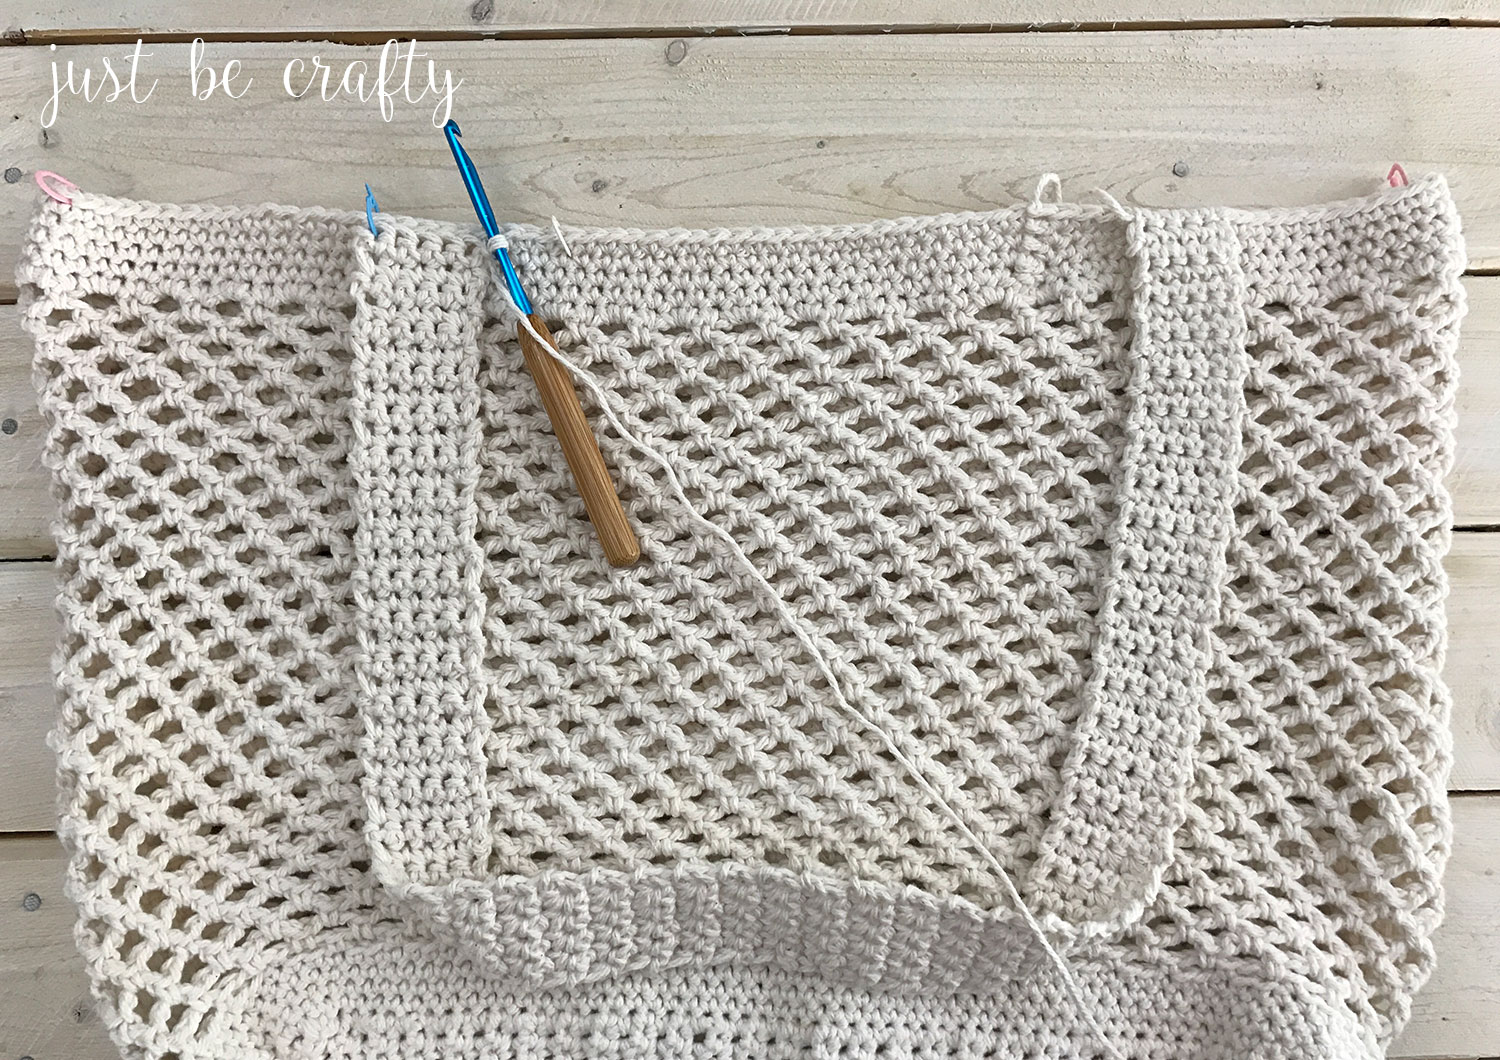 Crochet Farmers Market Bag Pattern Free Pattern By Just Be Crafty